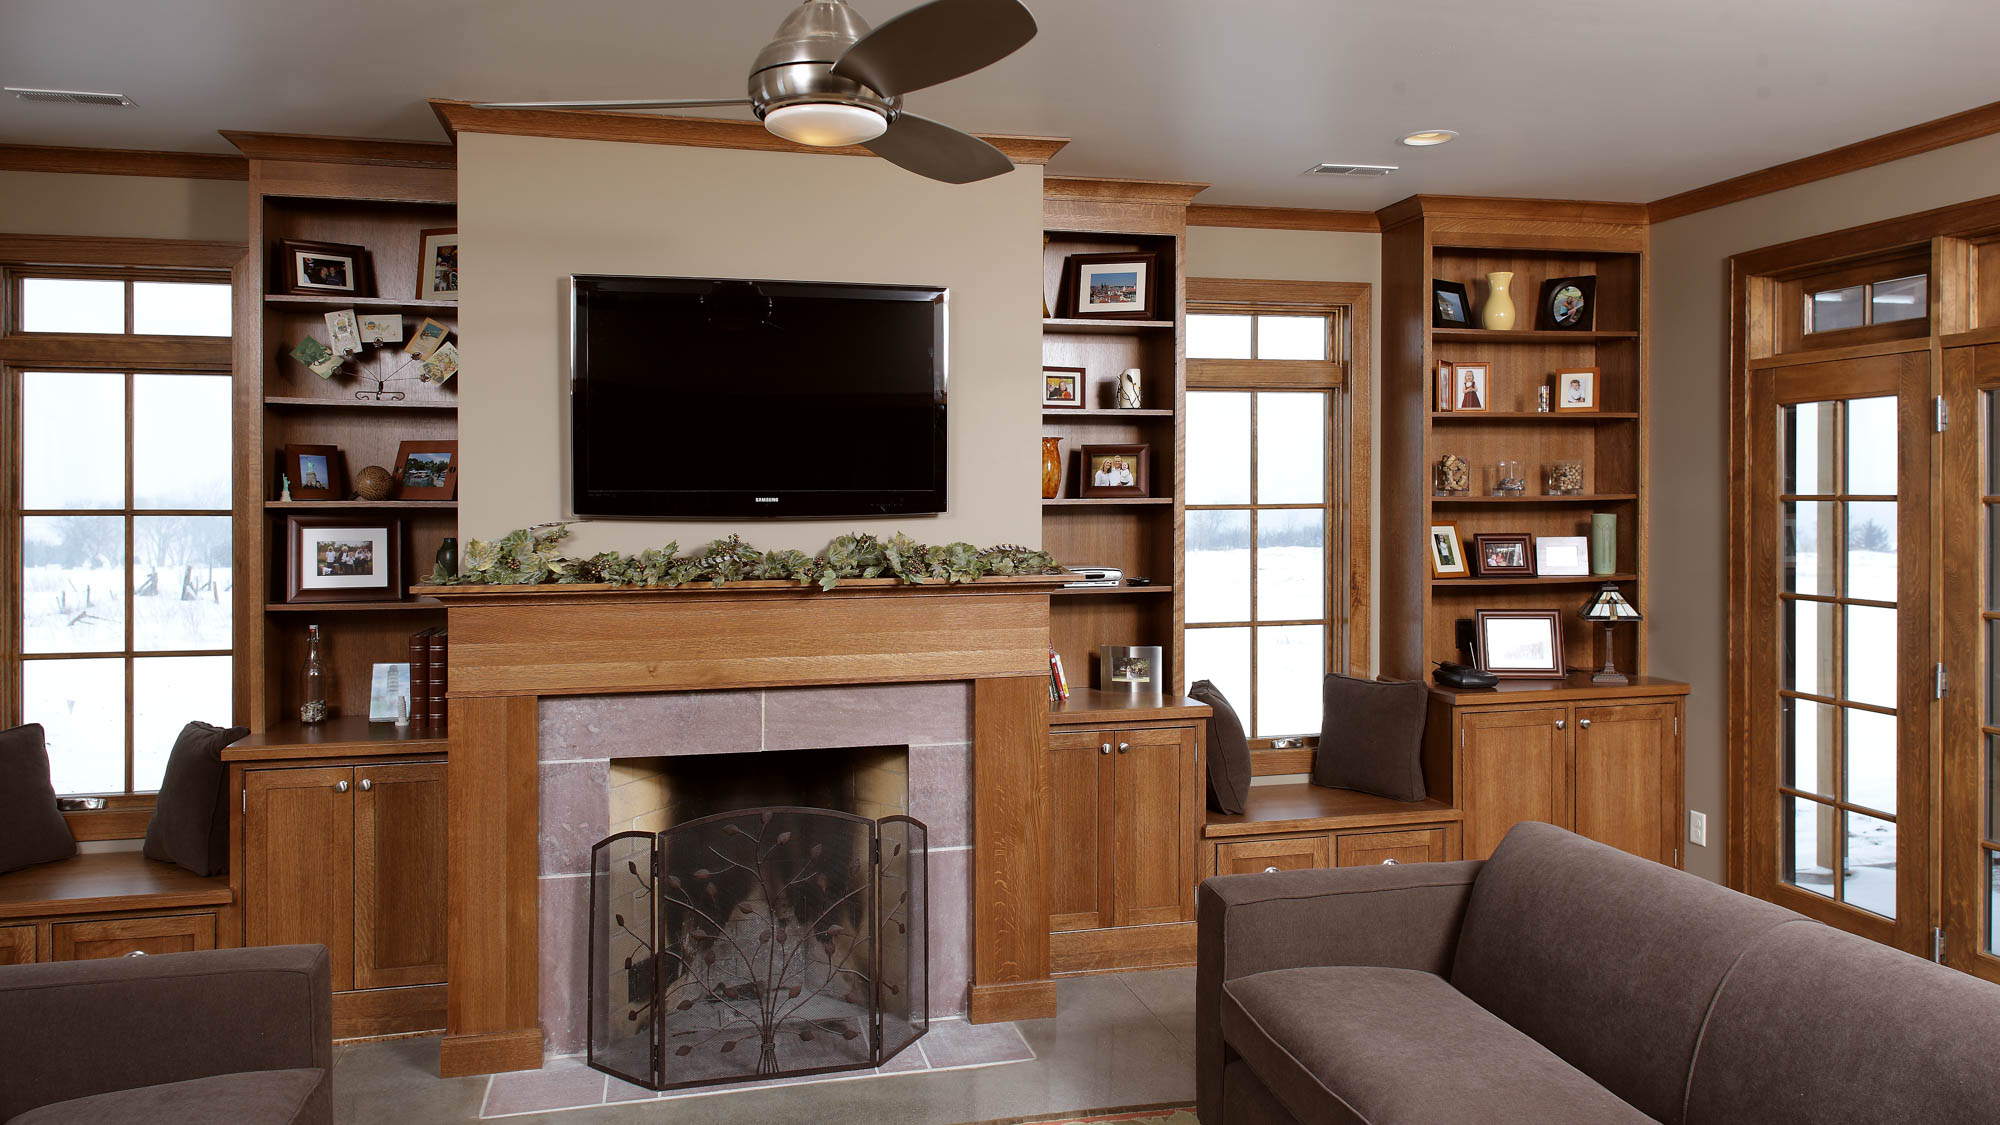 Stained family room fireplace surround in Truffle by Showplace Cabinetry